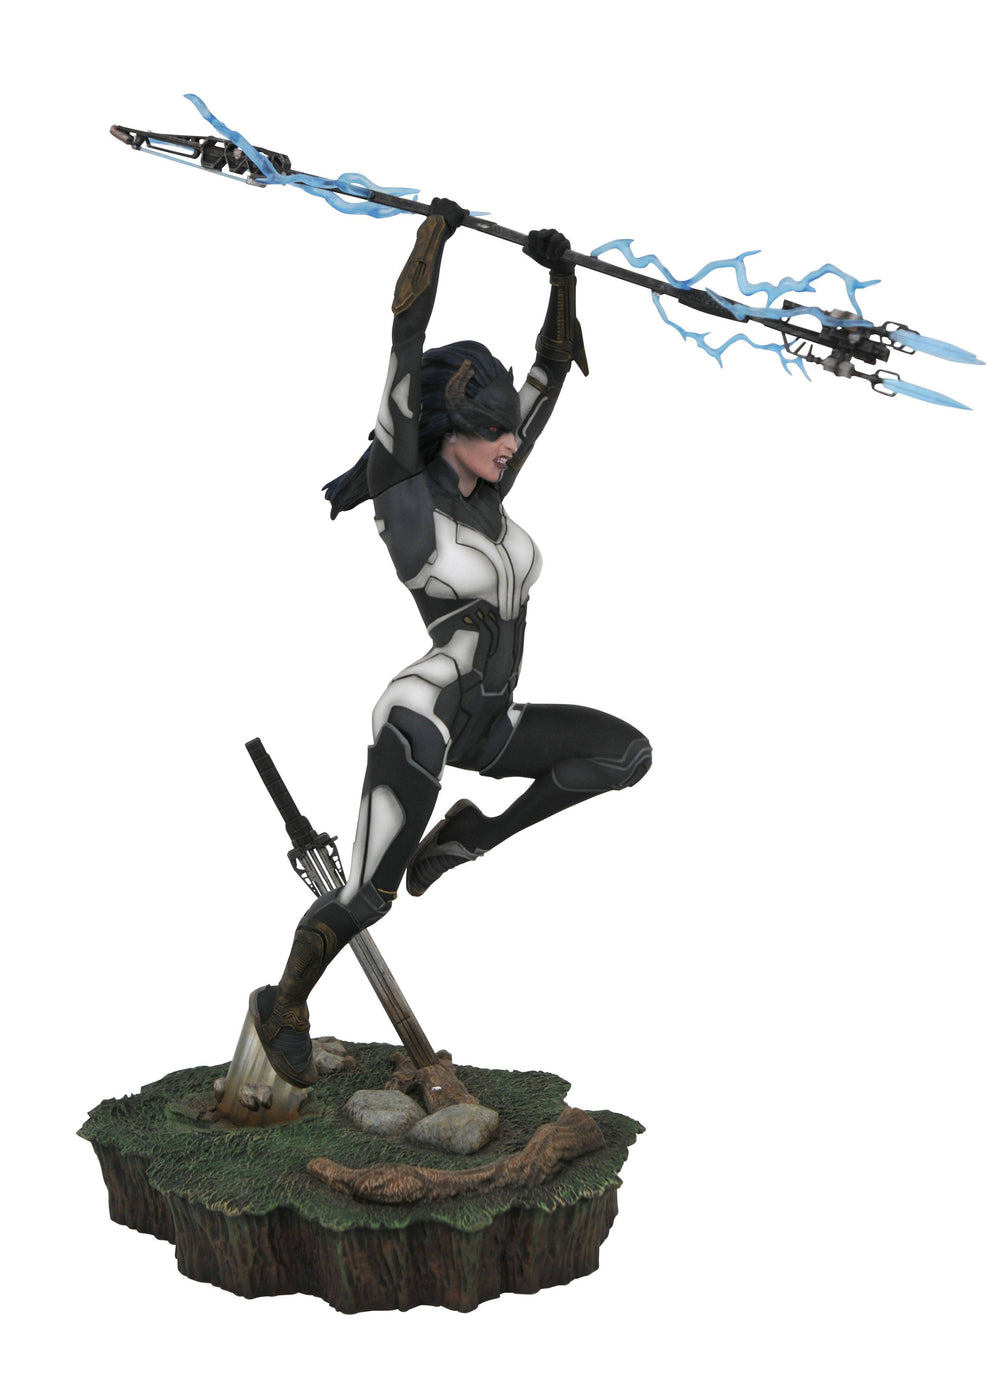 Diamond Select Toys Marvel Gallery Avengers 3 Proxima Midnight PVC Statue